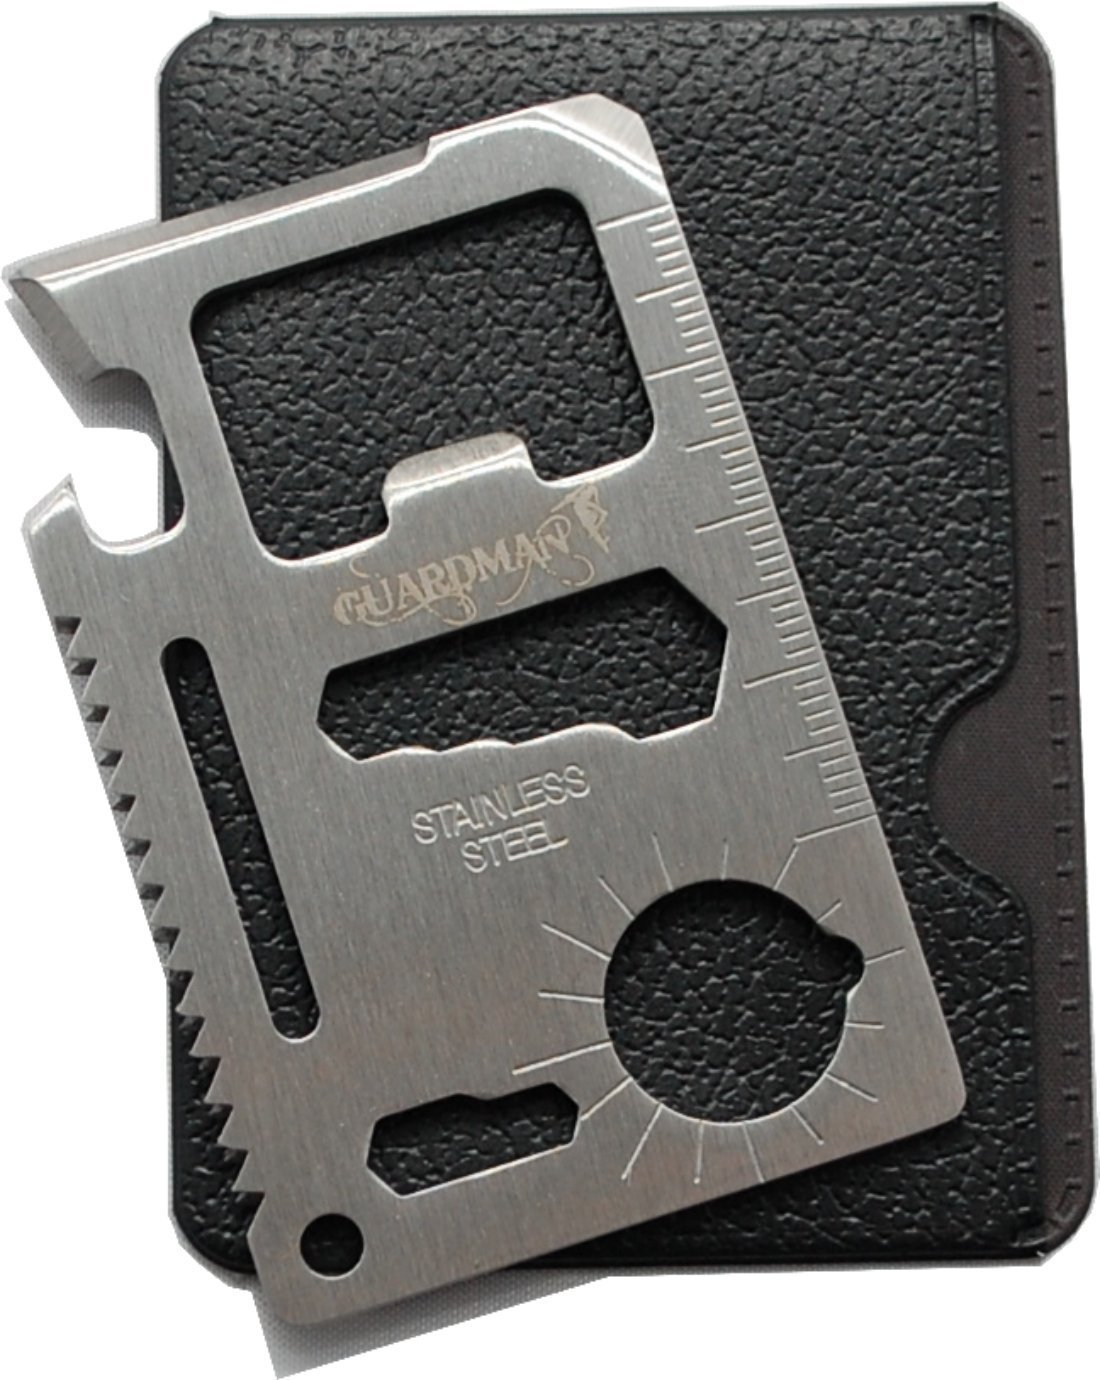 Guardman 11 in 1 Survival Card Tool Fits Perfect in Your Wallet | 25+ Gifts for Him